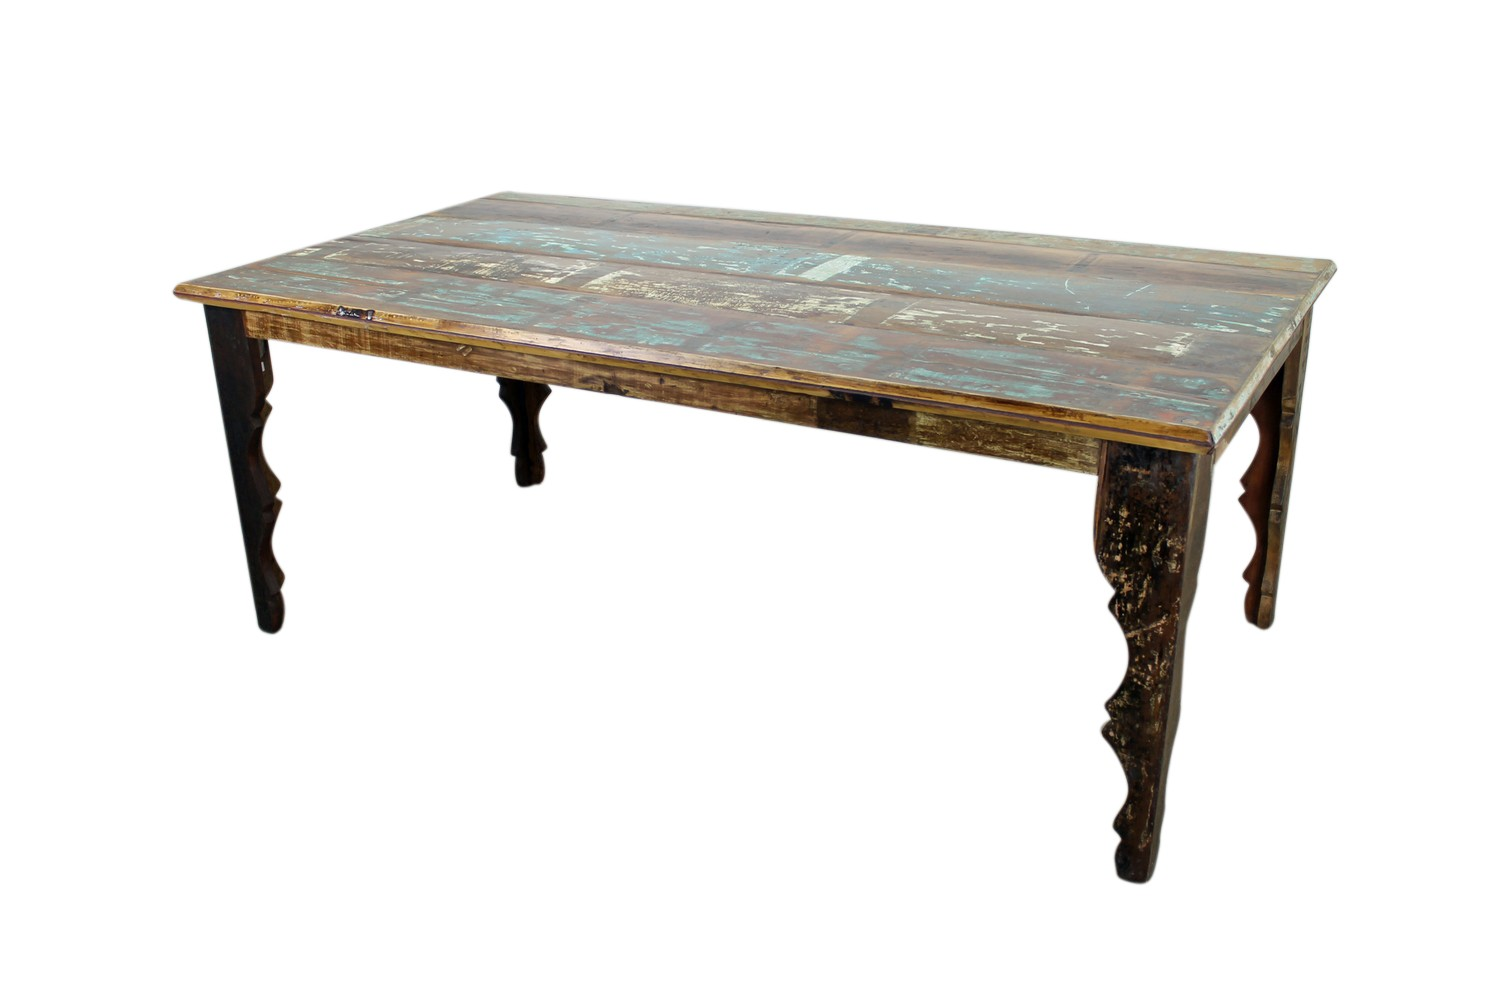 Finish Tables Rustic Dining Furniture Mexicali Distressed Finish Dining